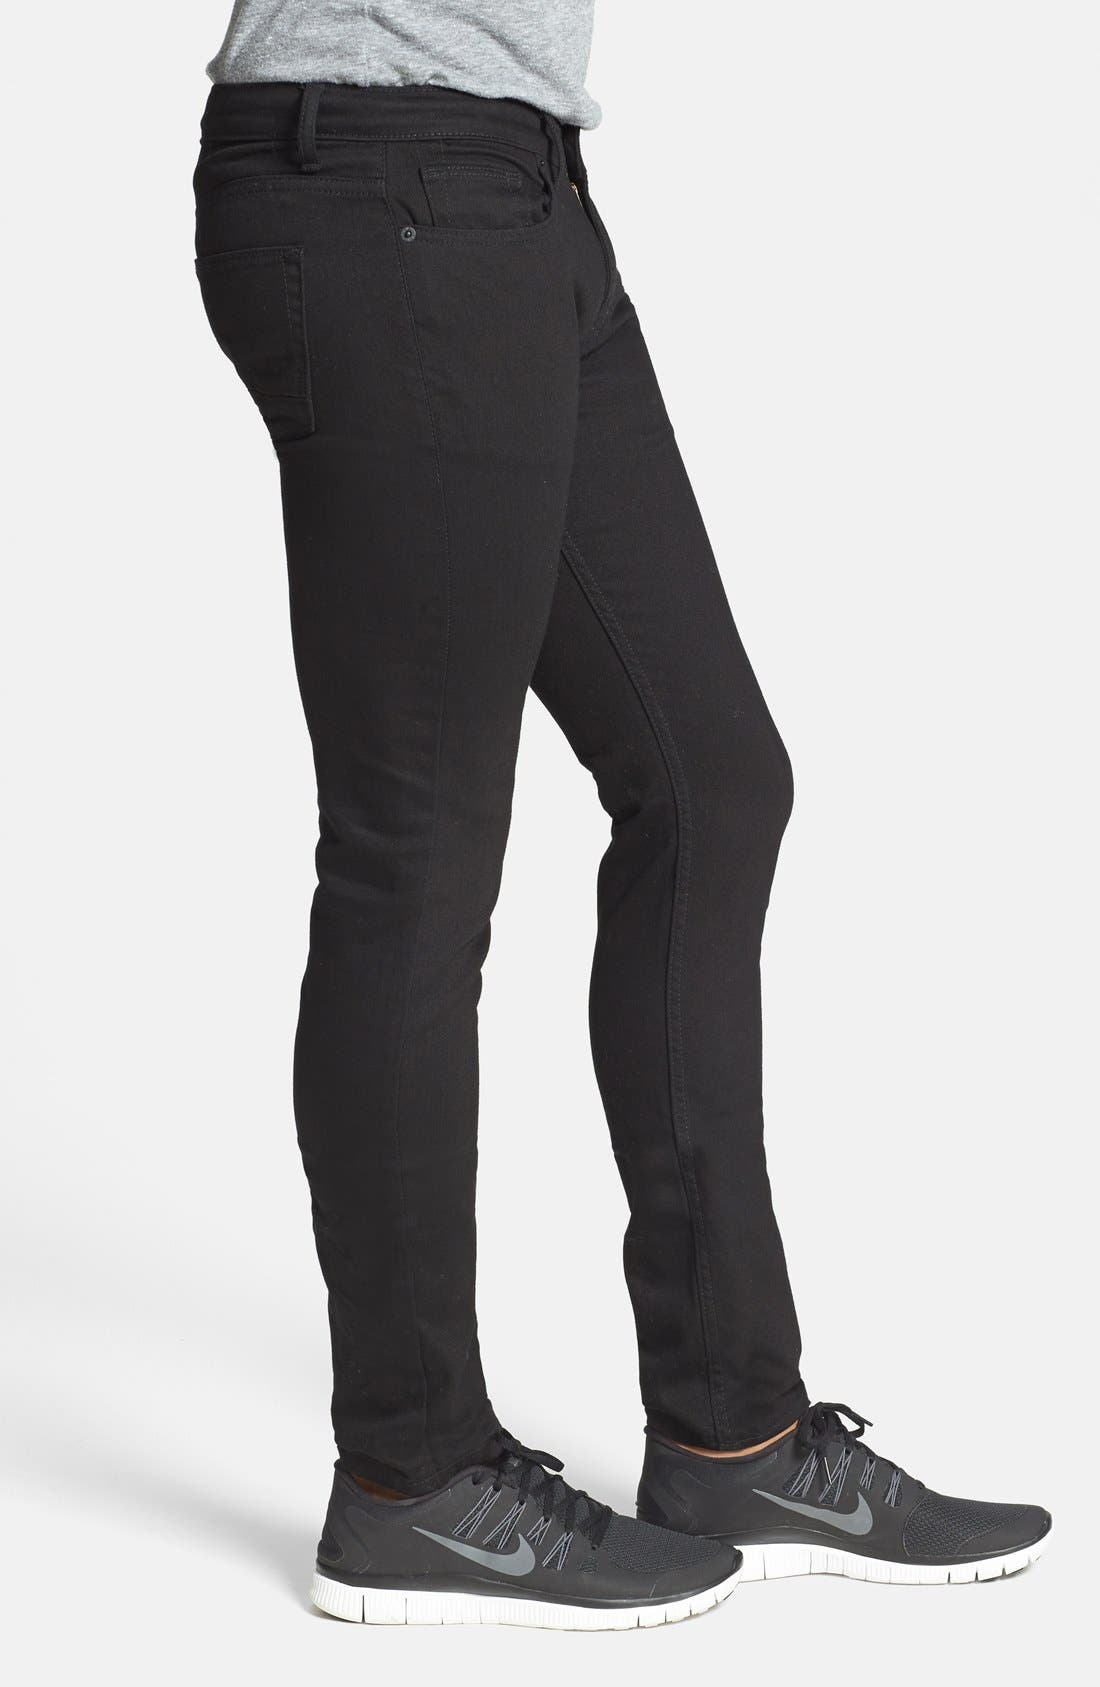 TOPMAN, Stretch Skinny Fit Jeans, Alternate thumbnail 3, color, 001